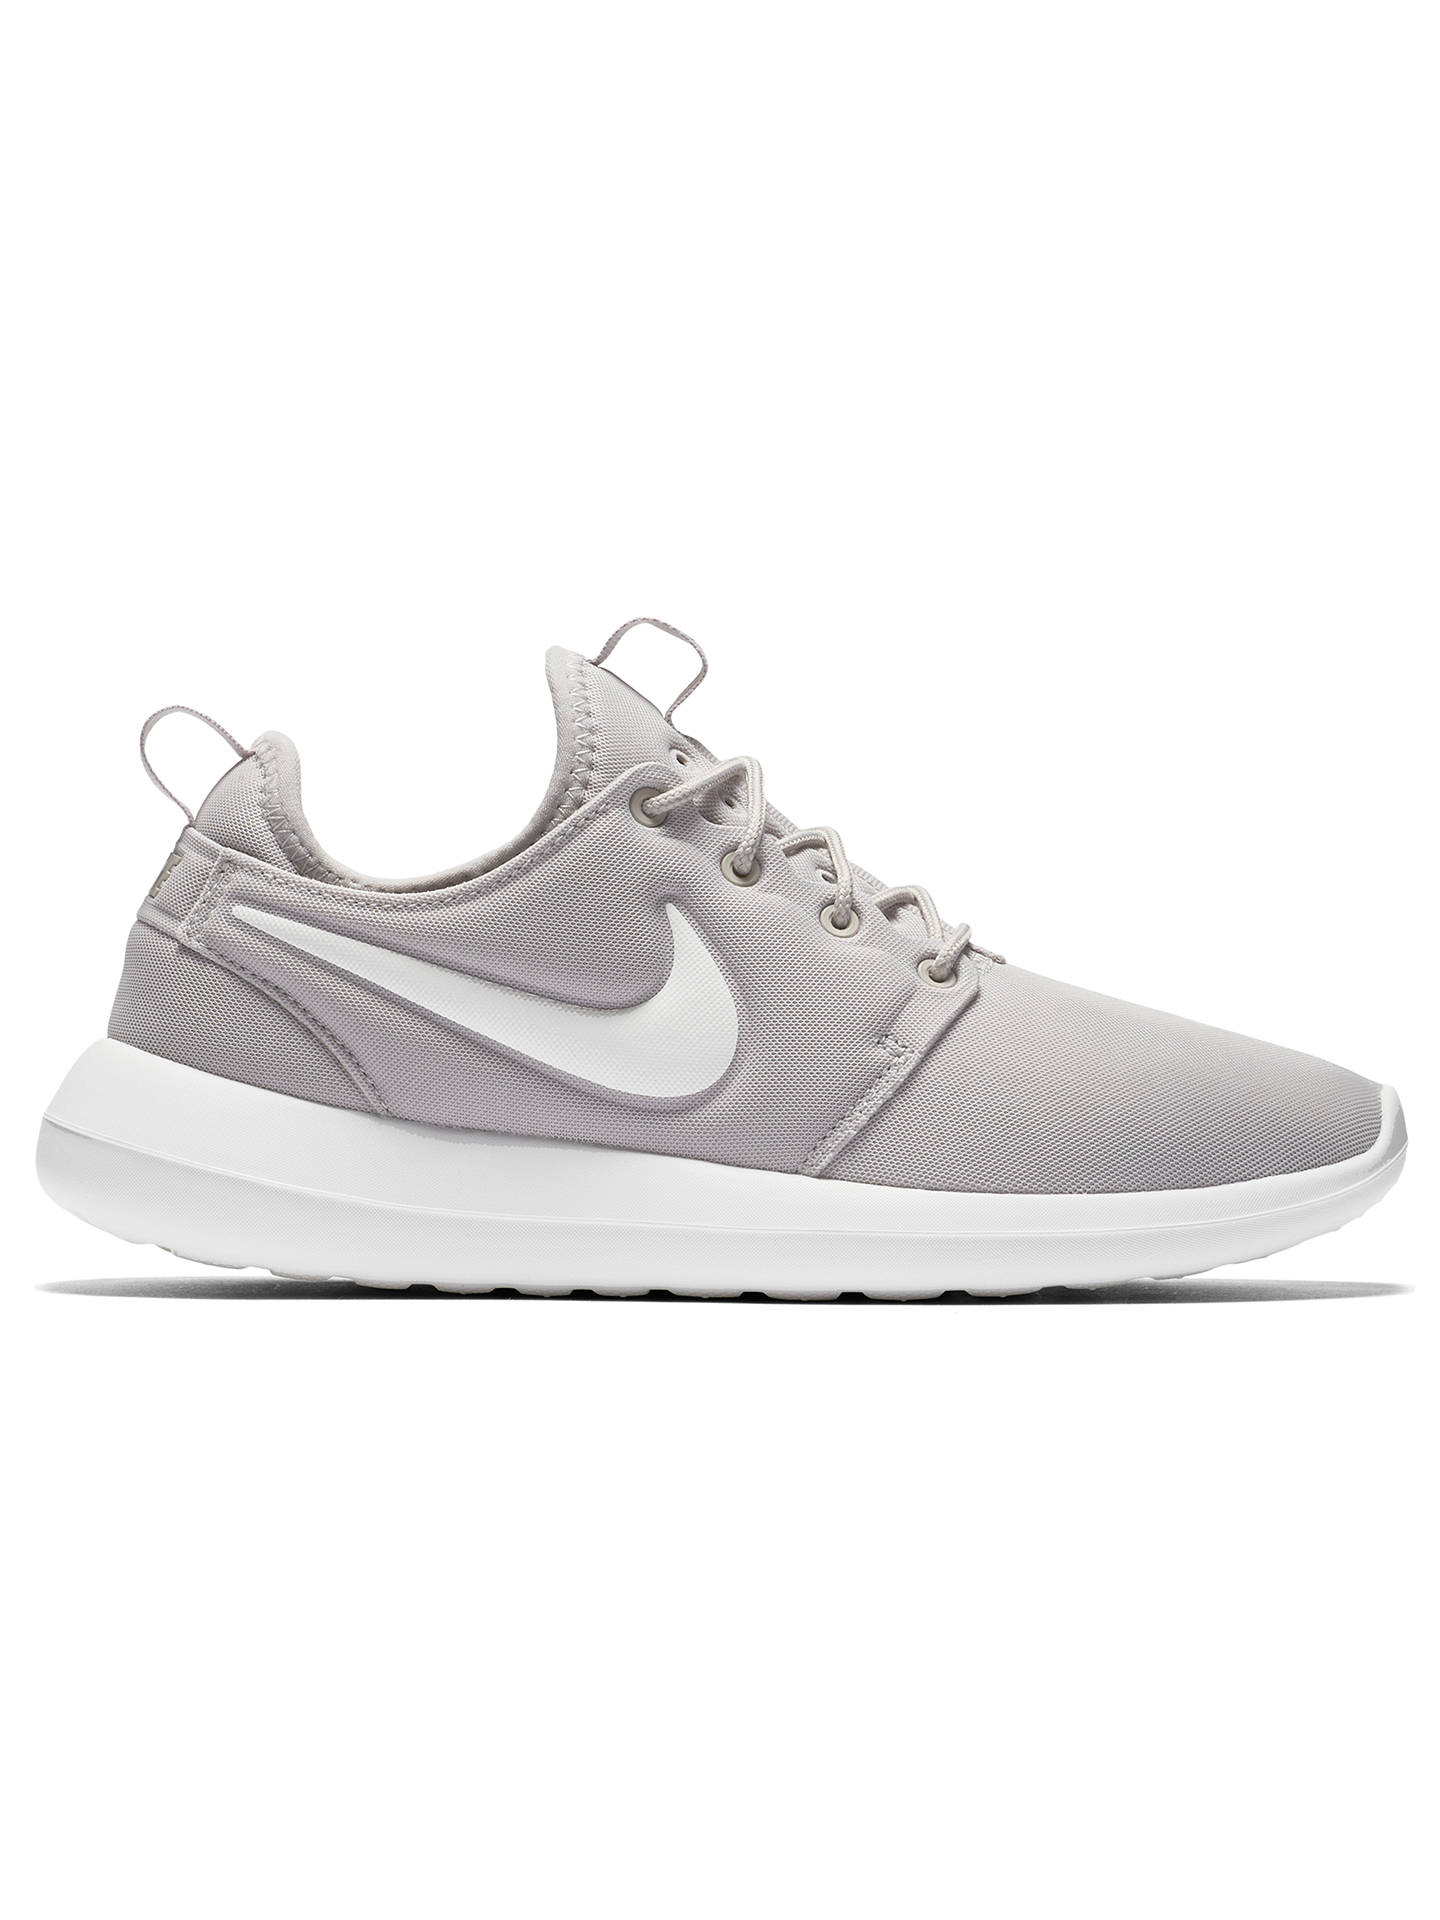 online store 0f185 68178 ... Buy Nike Roshe Two Women s Trainers, Grey, 4 Online at johnlewis. ...